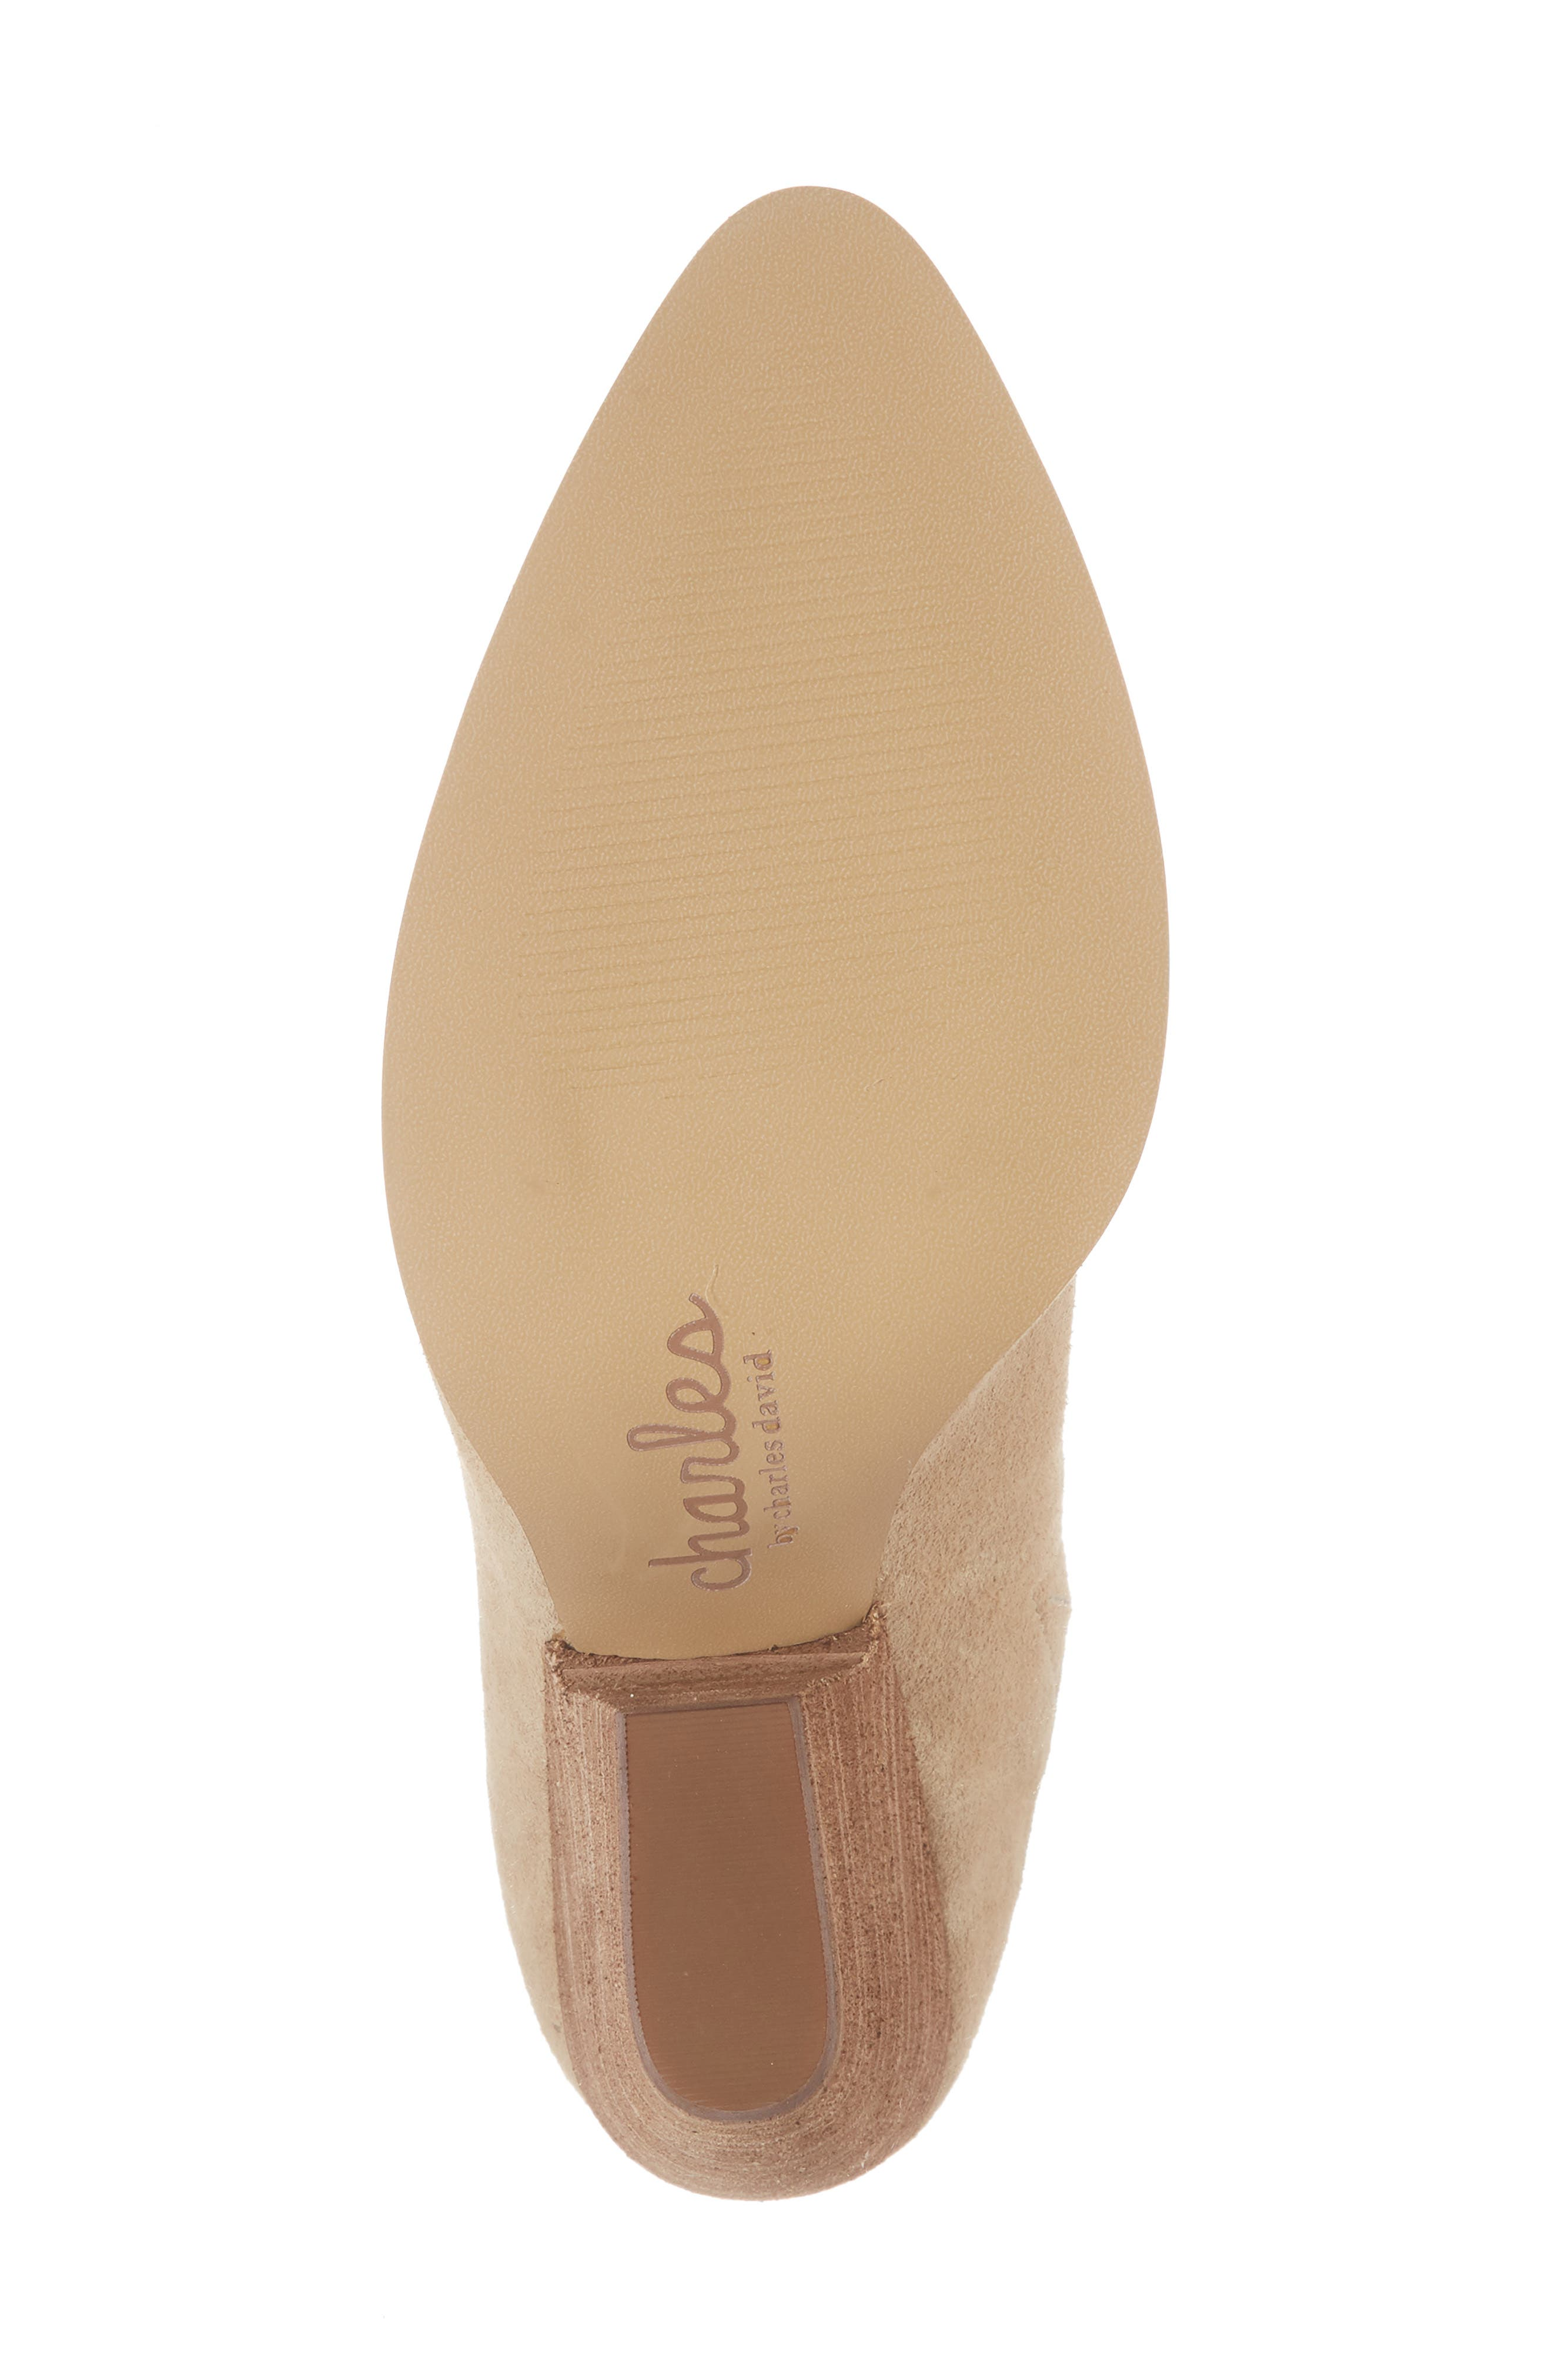 CHARLES BY CHARLES DAVID, Nico Mule, Alternate thumbnail 6, color, NUDE LIGHT GOLD SUEDE